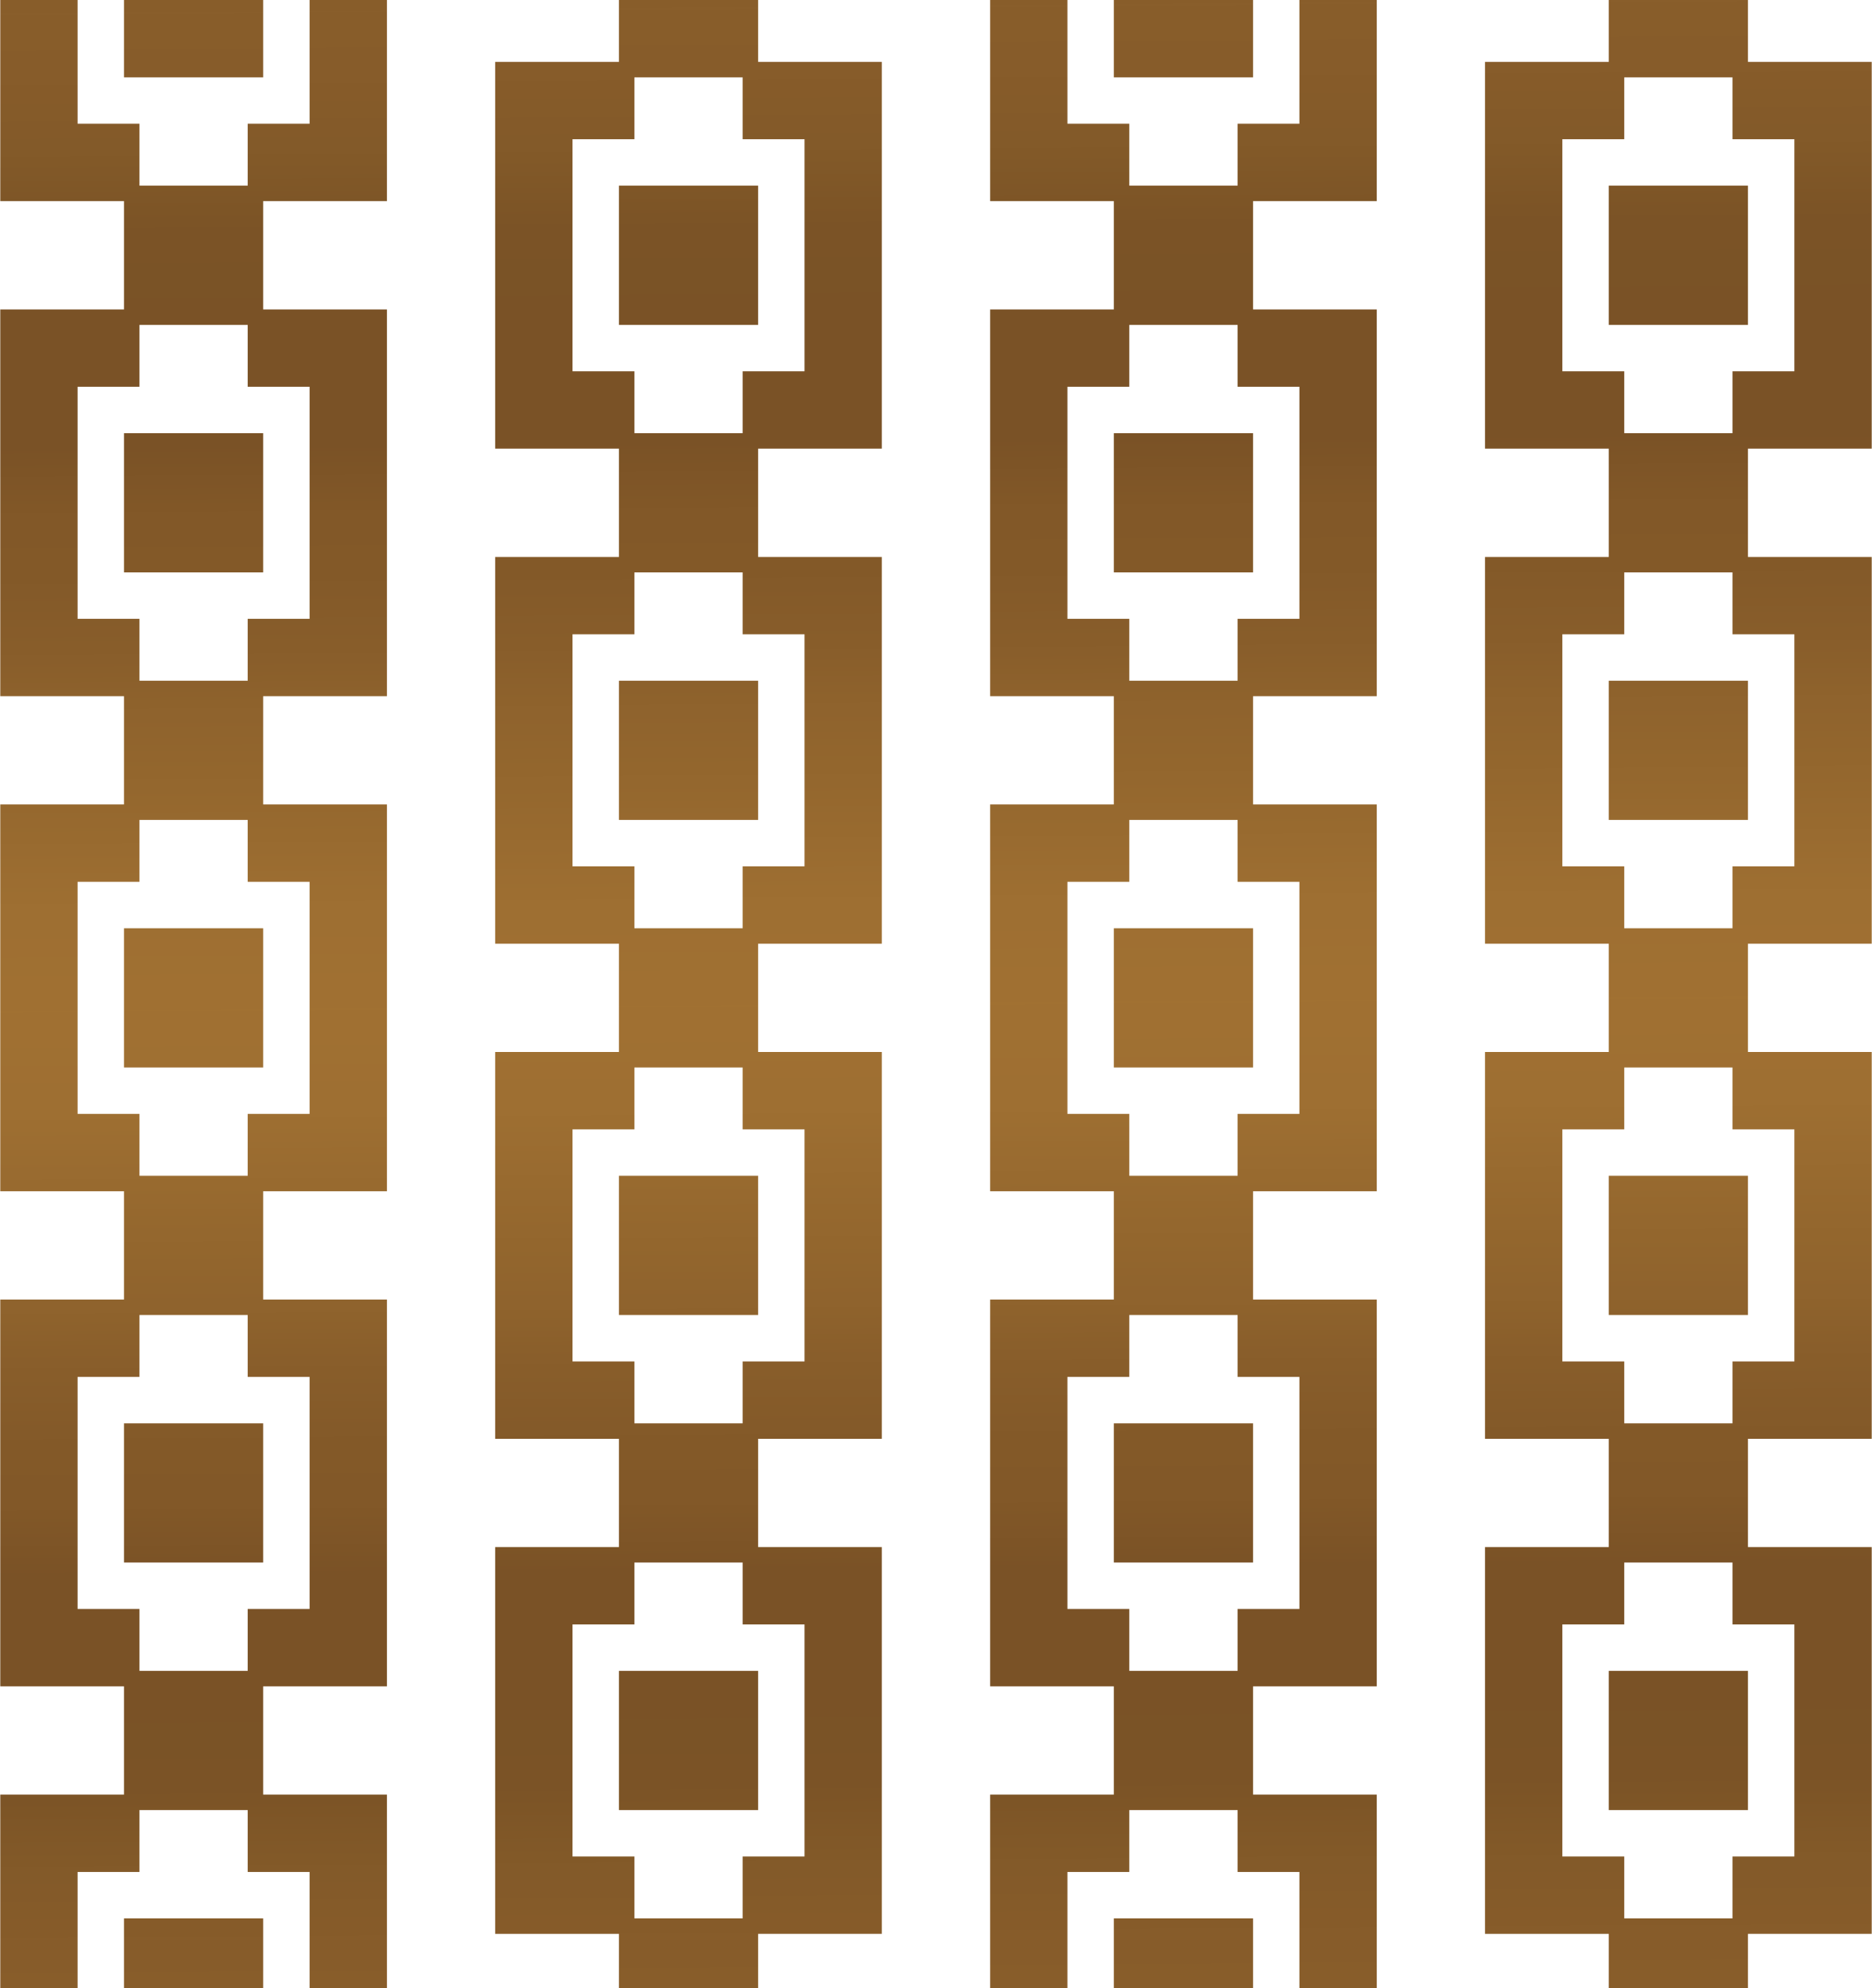 Bronze Square Pattern by Arvin61r58